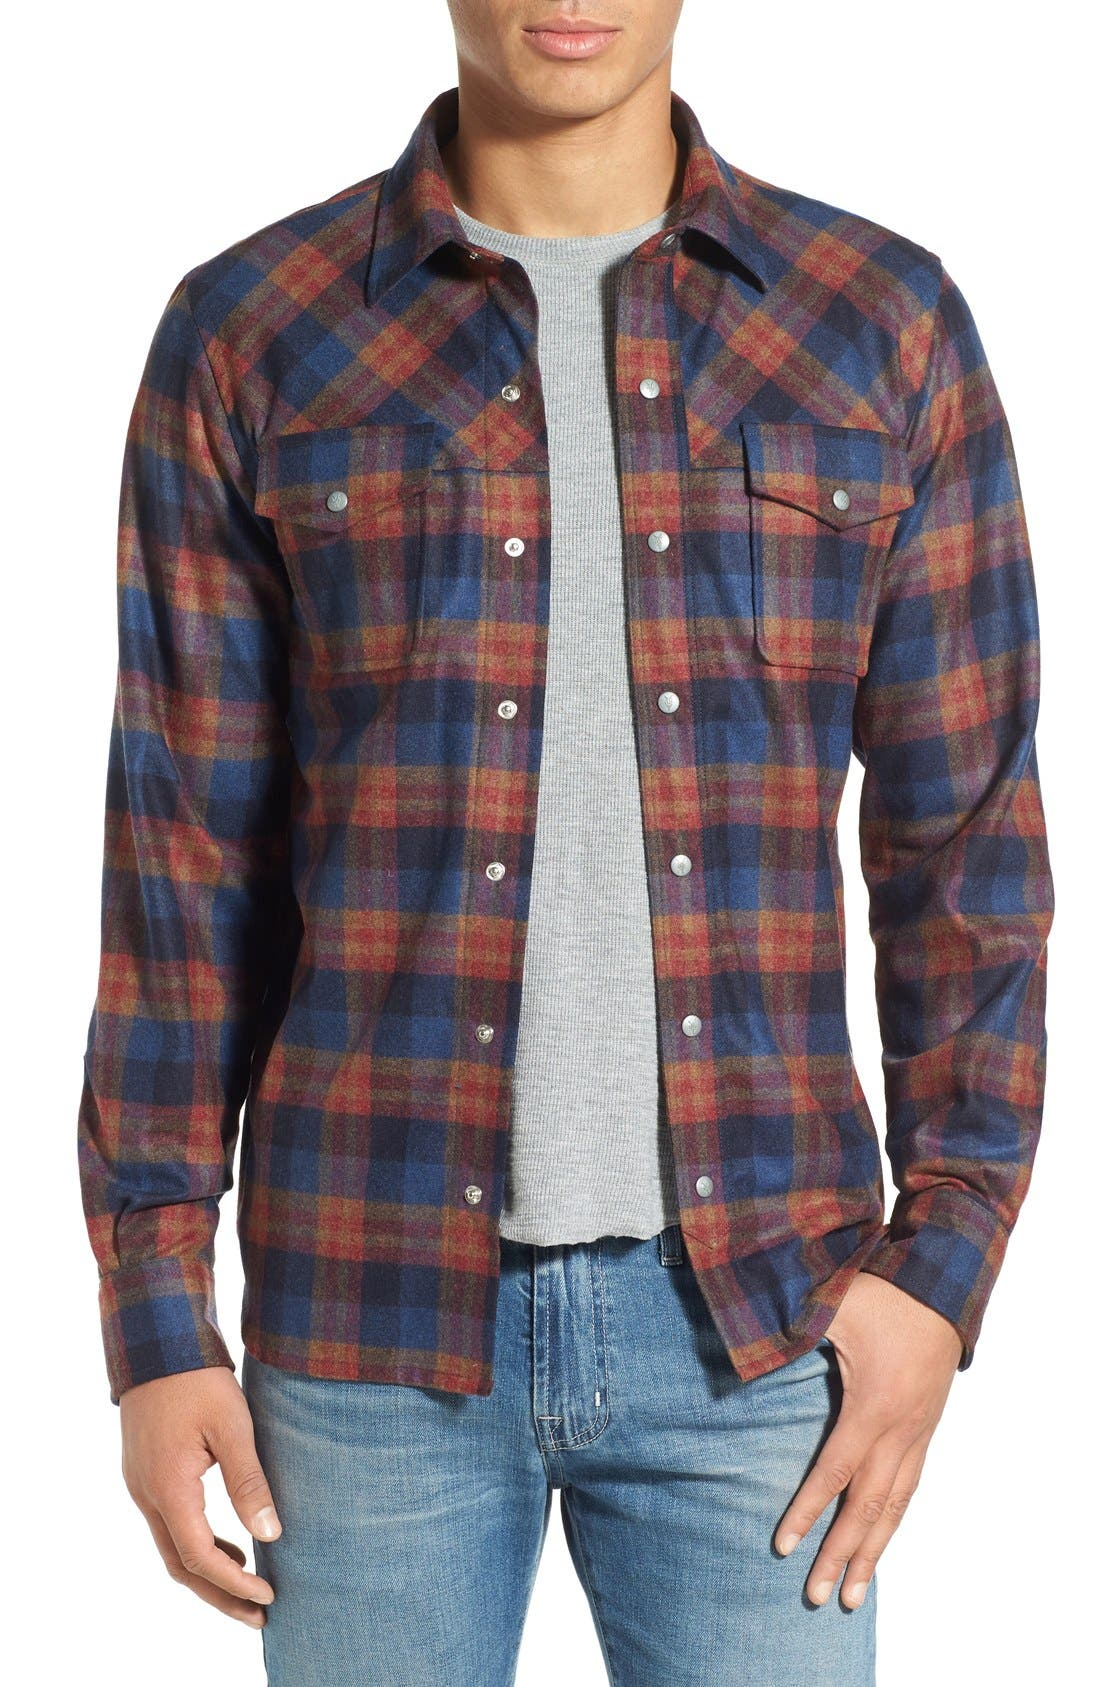 ibex 'Taos' Plaid Wool Blend Sport Shirt